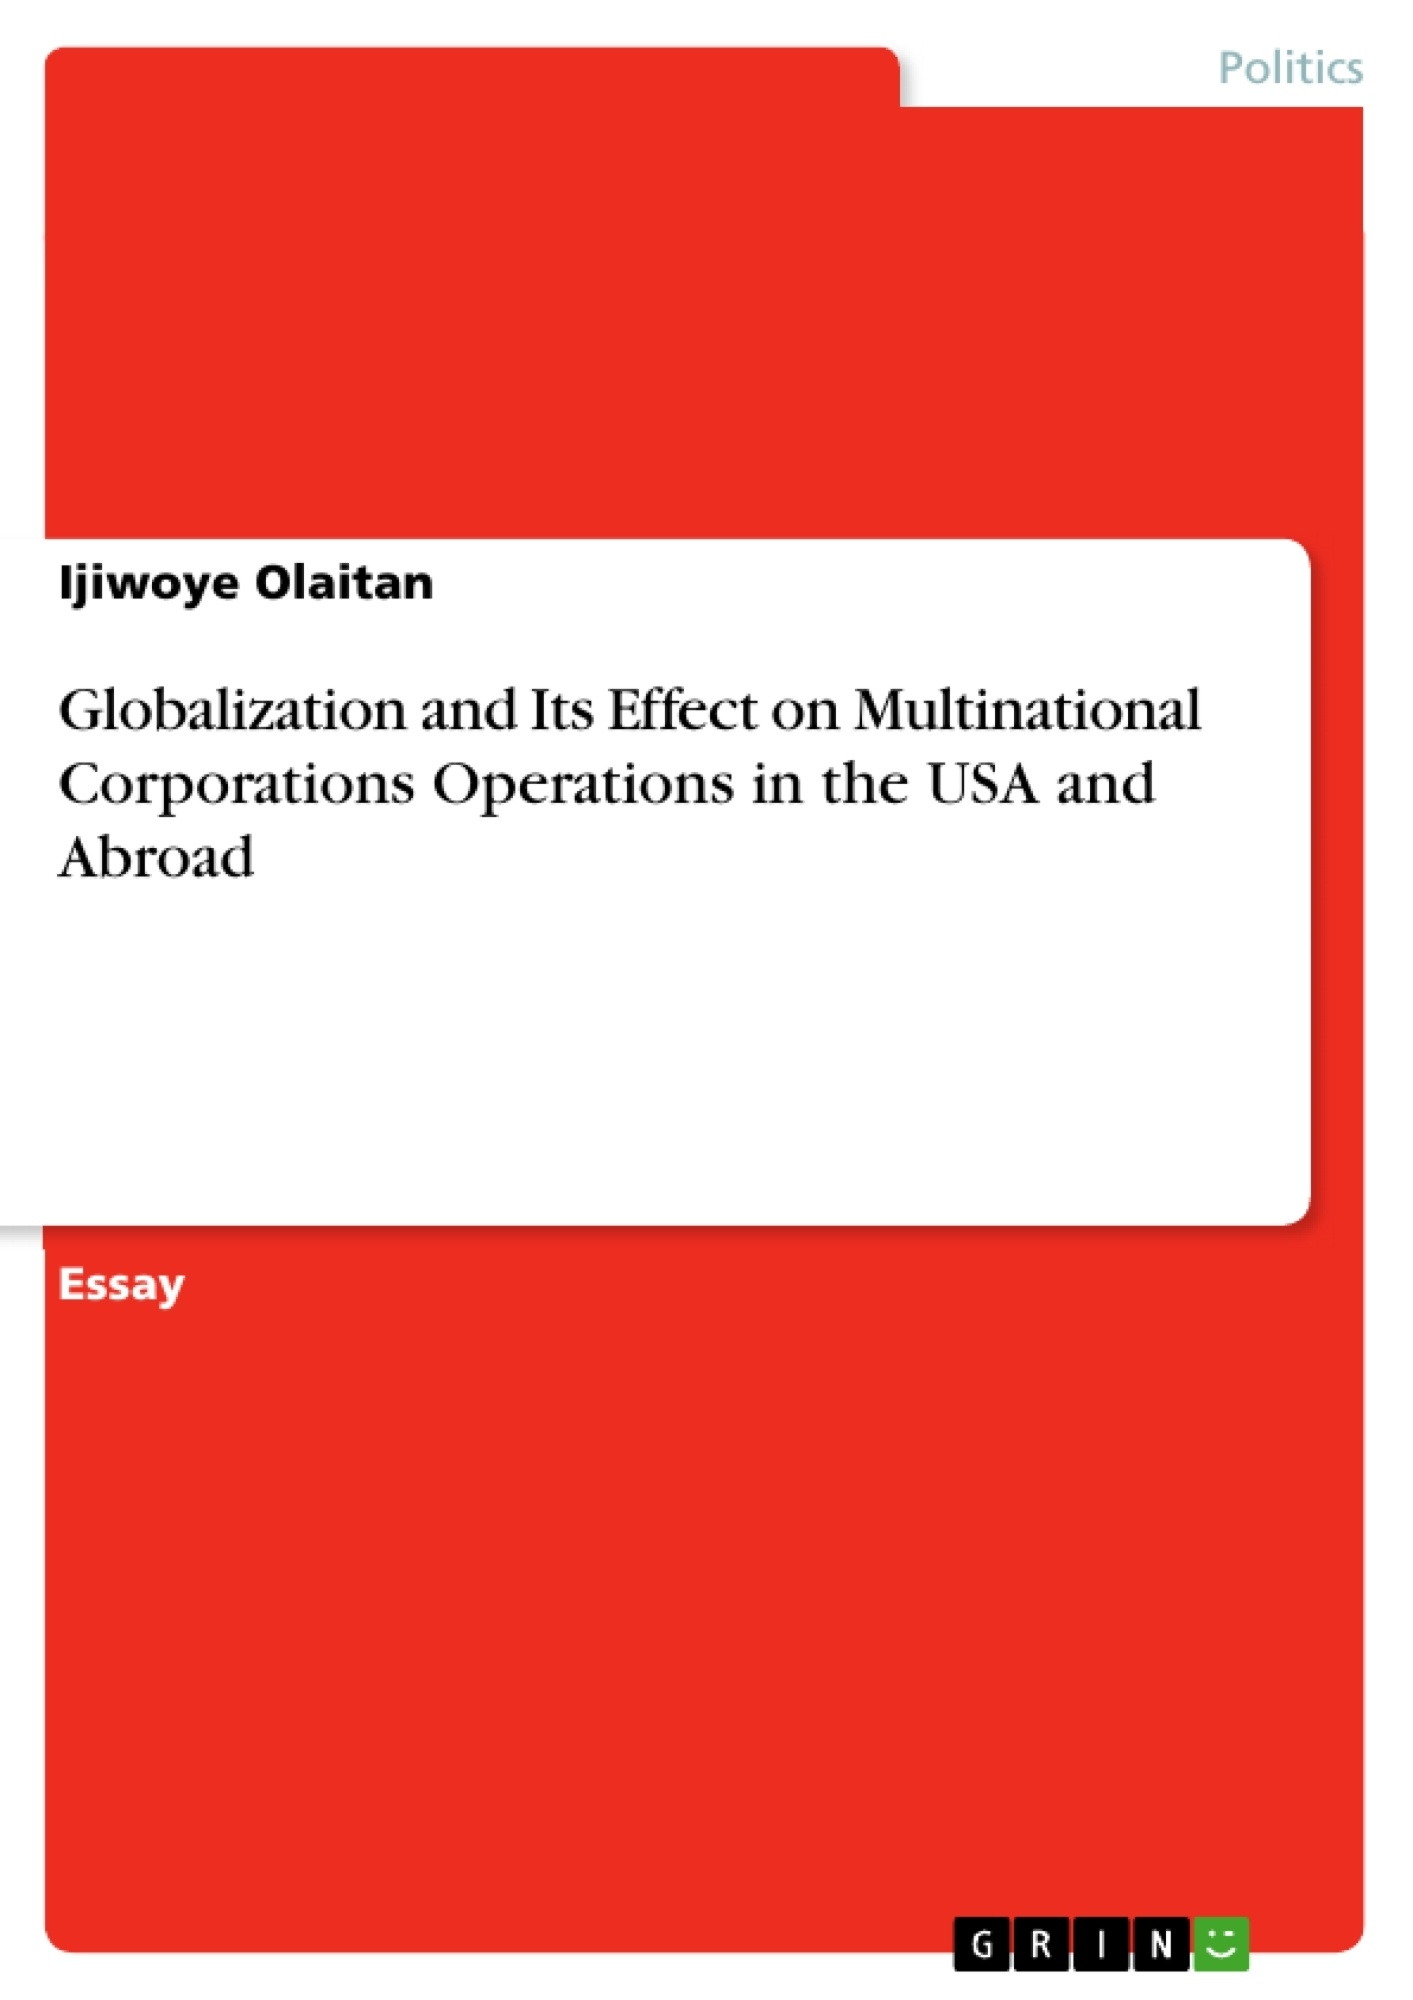 Title: Globalization and Its Effect on Multinational Corporations Operations in the USA and Abroad